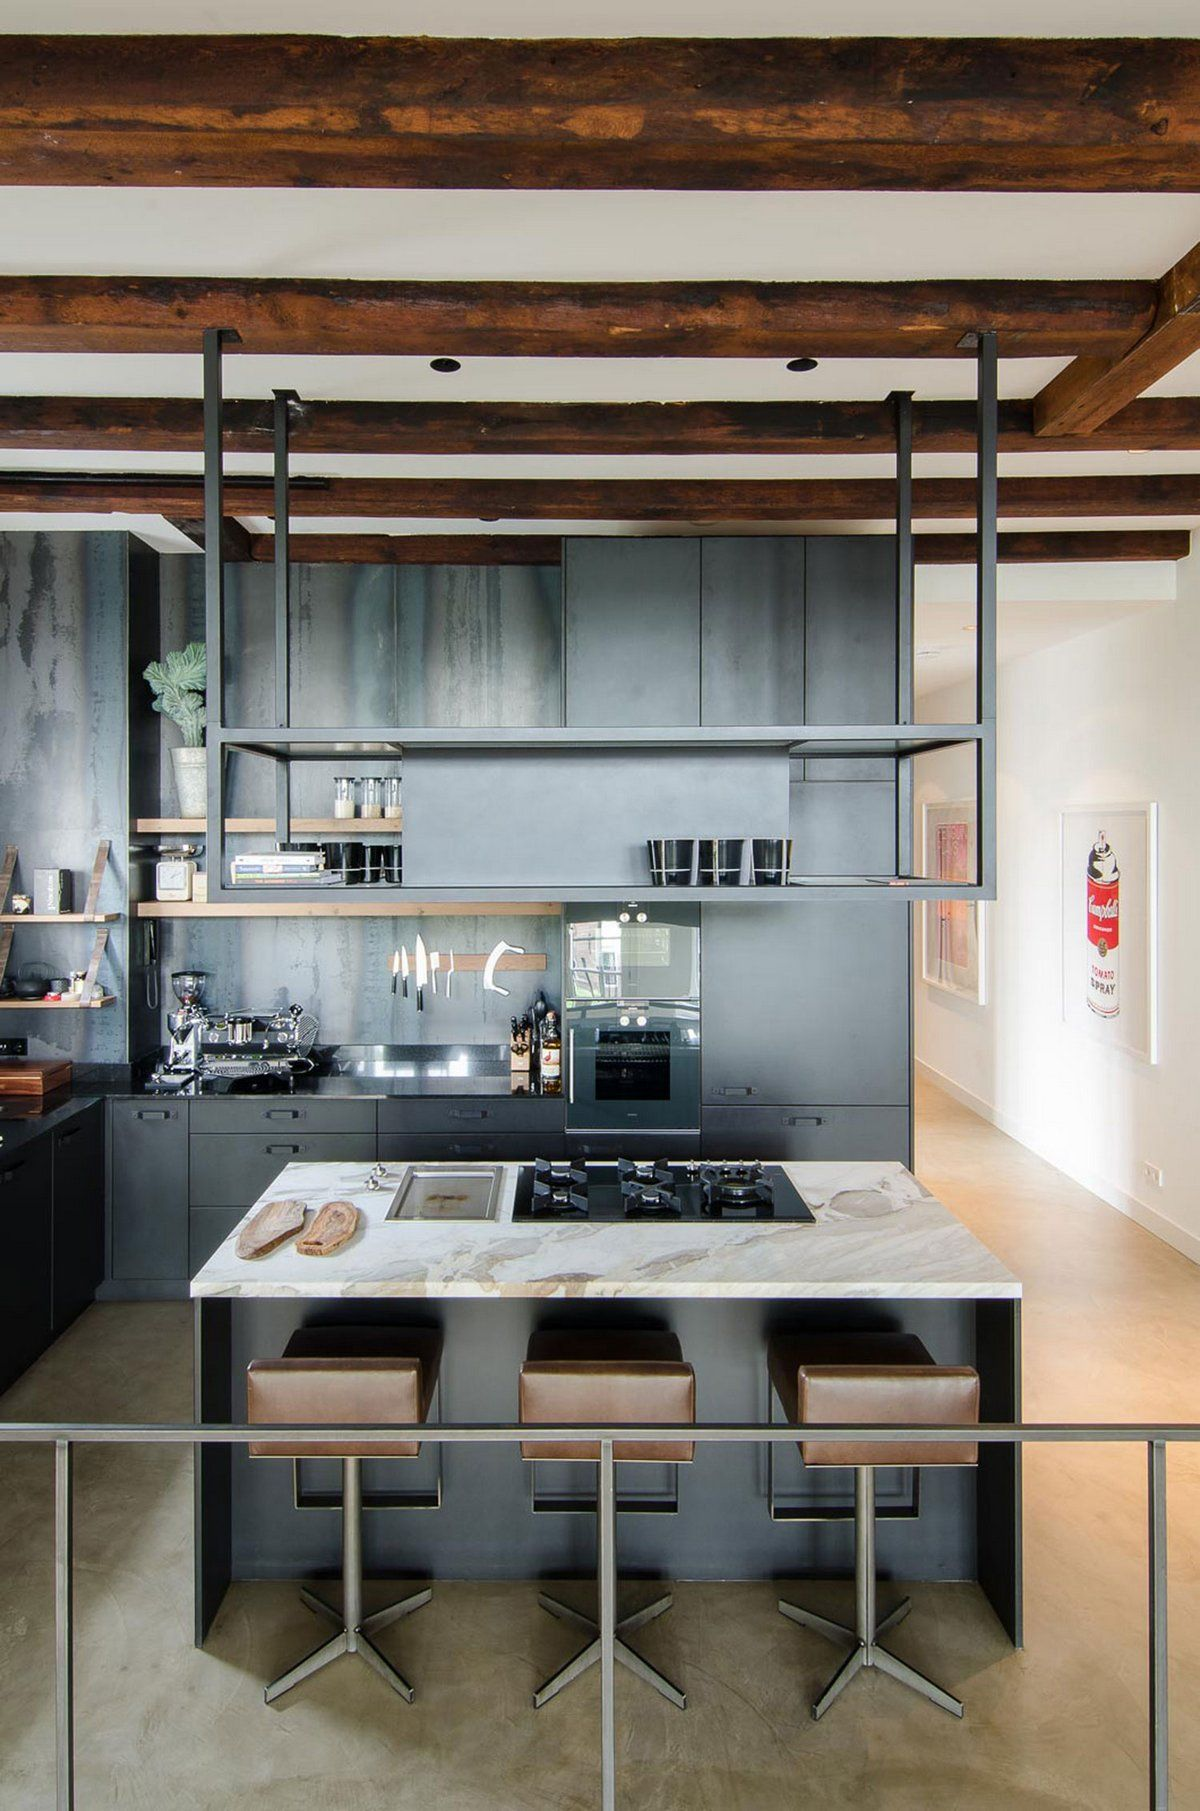 Black kitchen with an industrial style